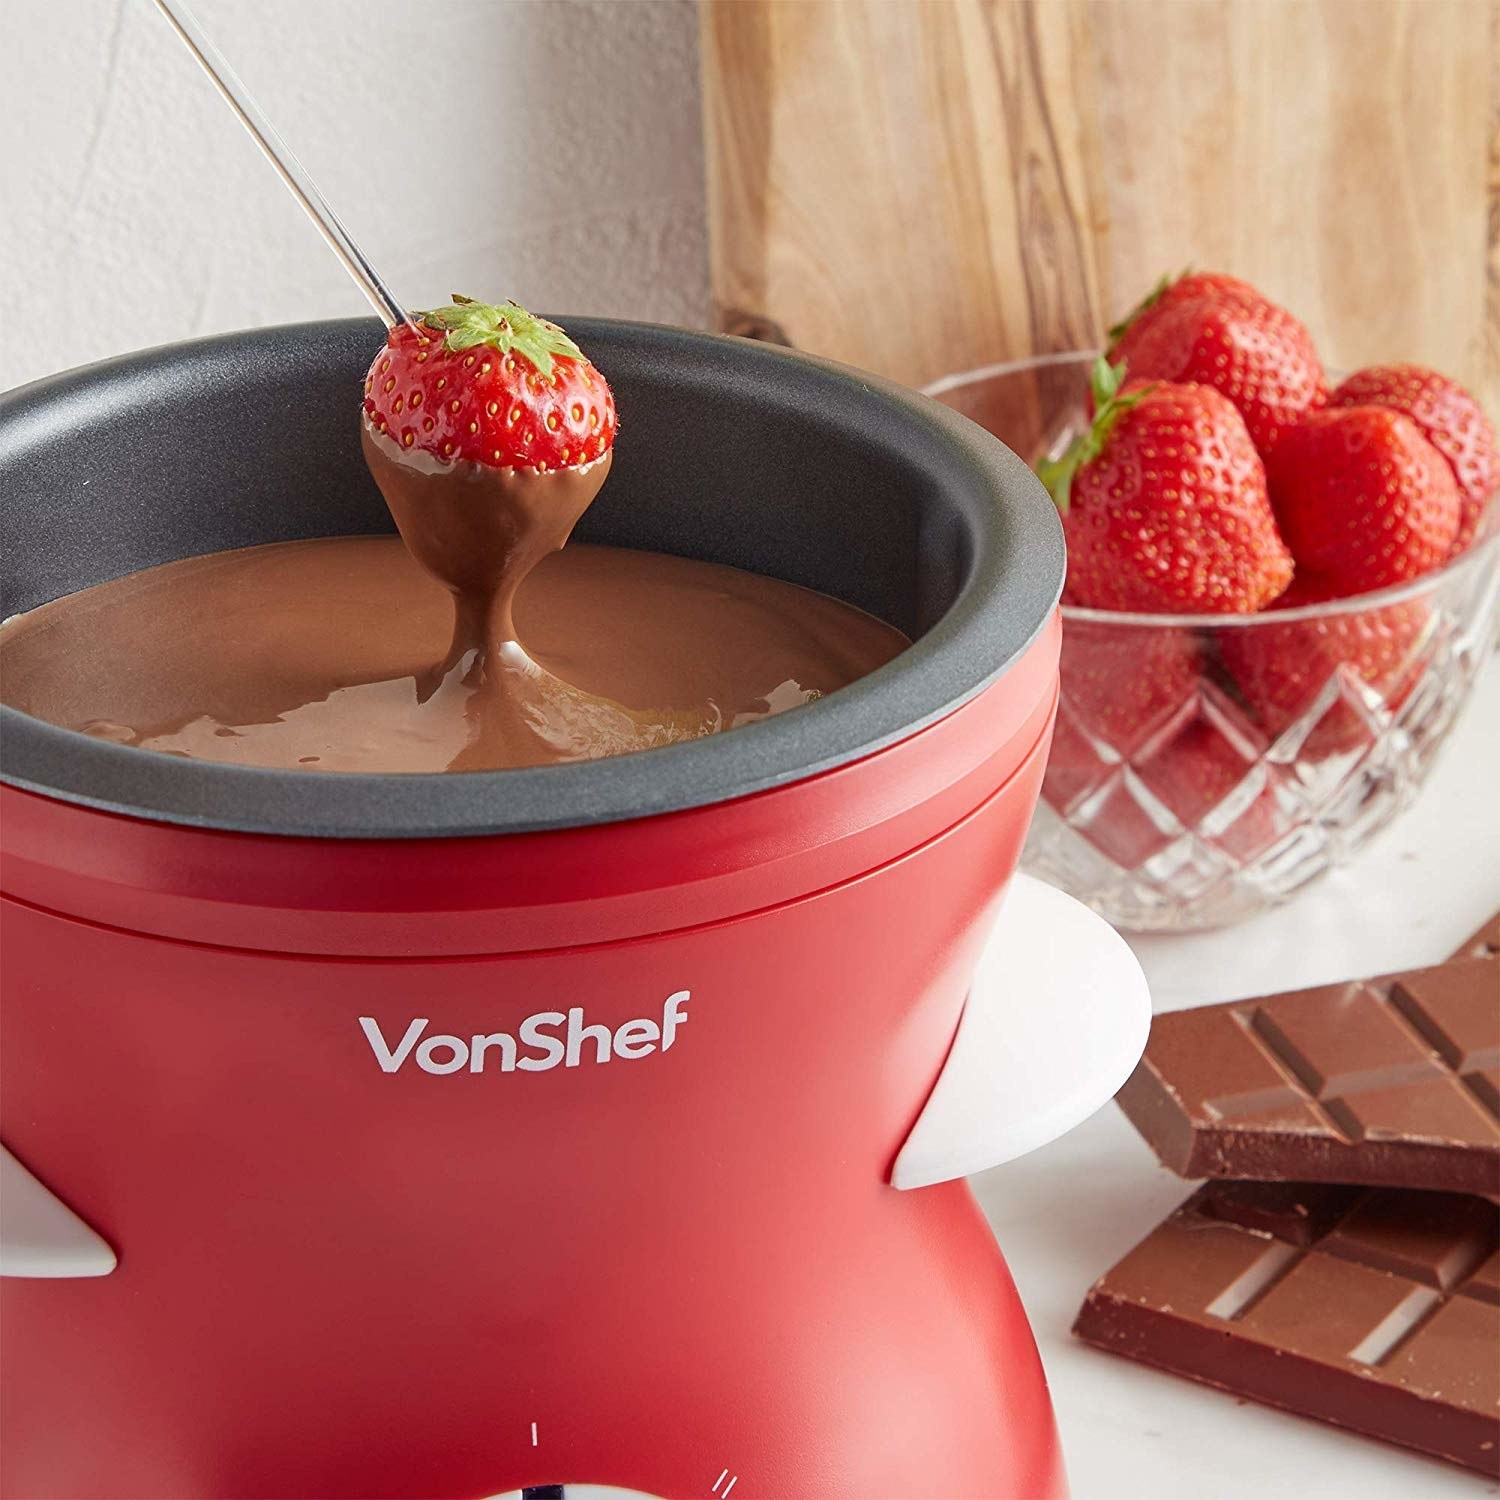 The red fondue maker filled with chocolate, with a strawberry being dipped in